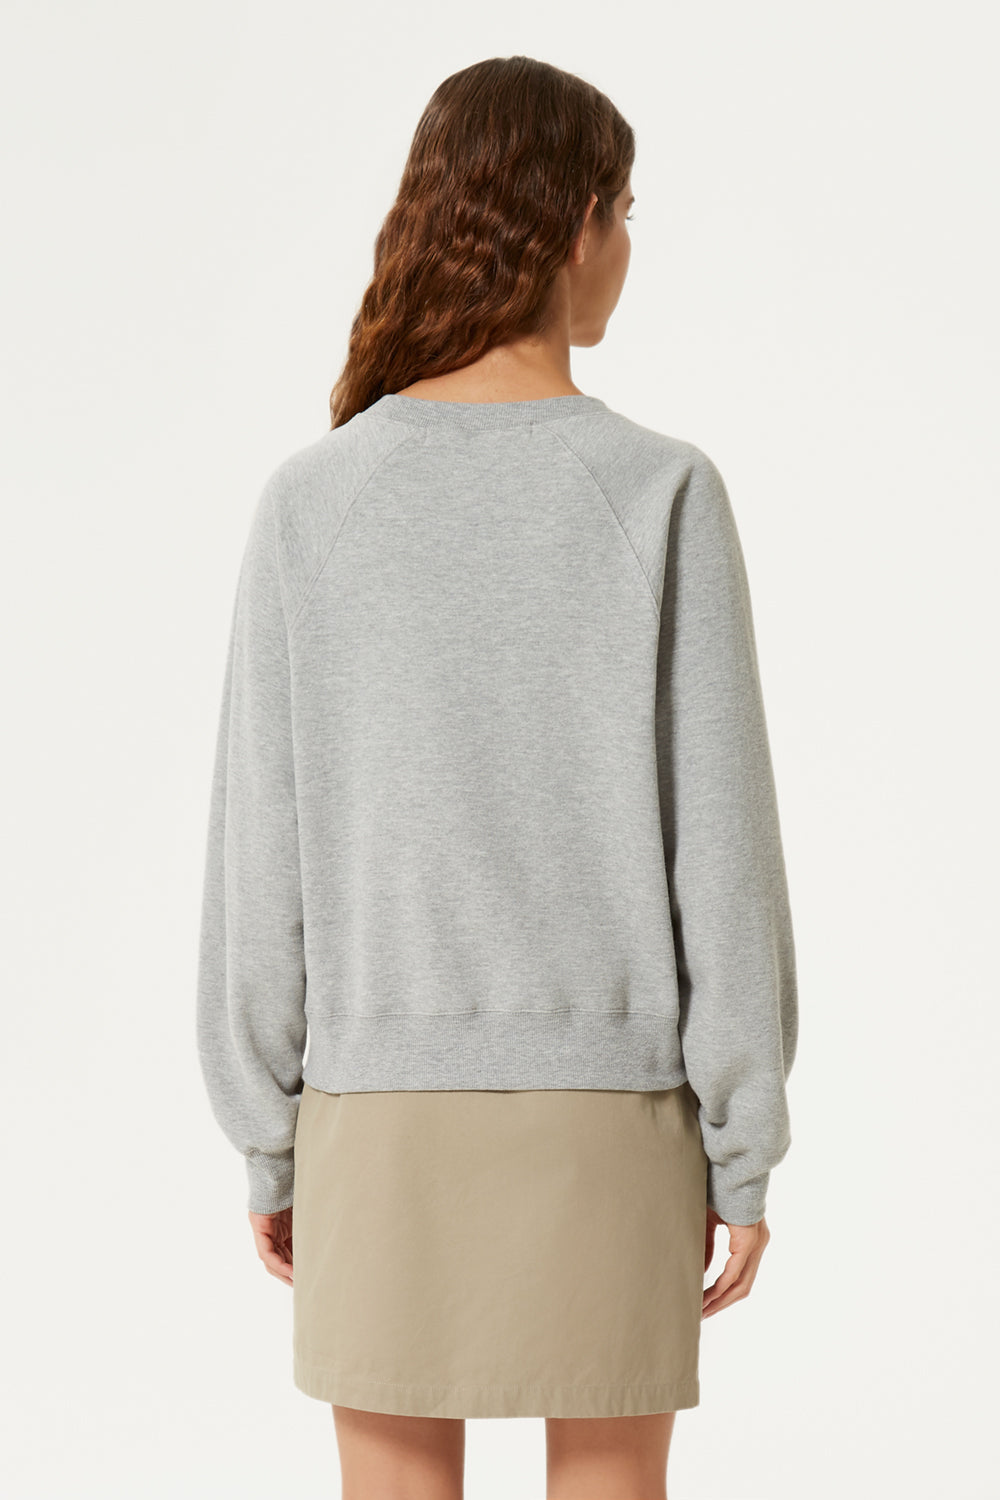 L'amour Jennings Sweatshirt